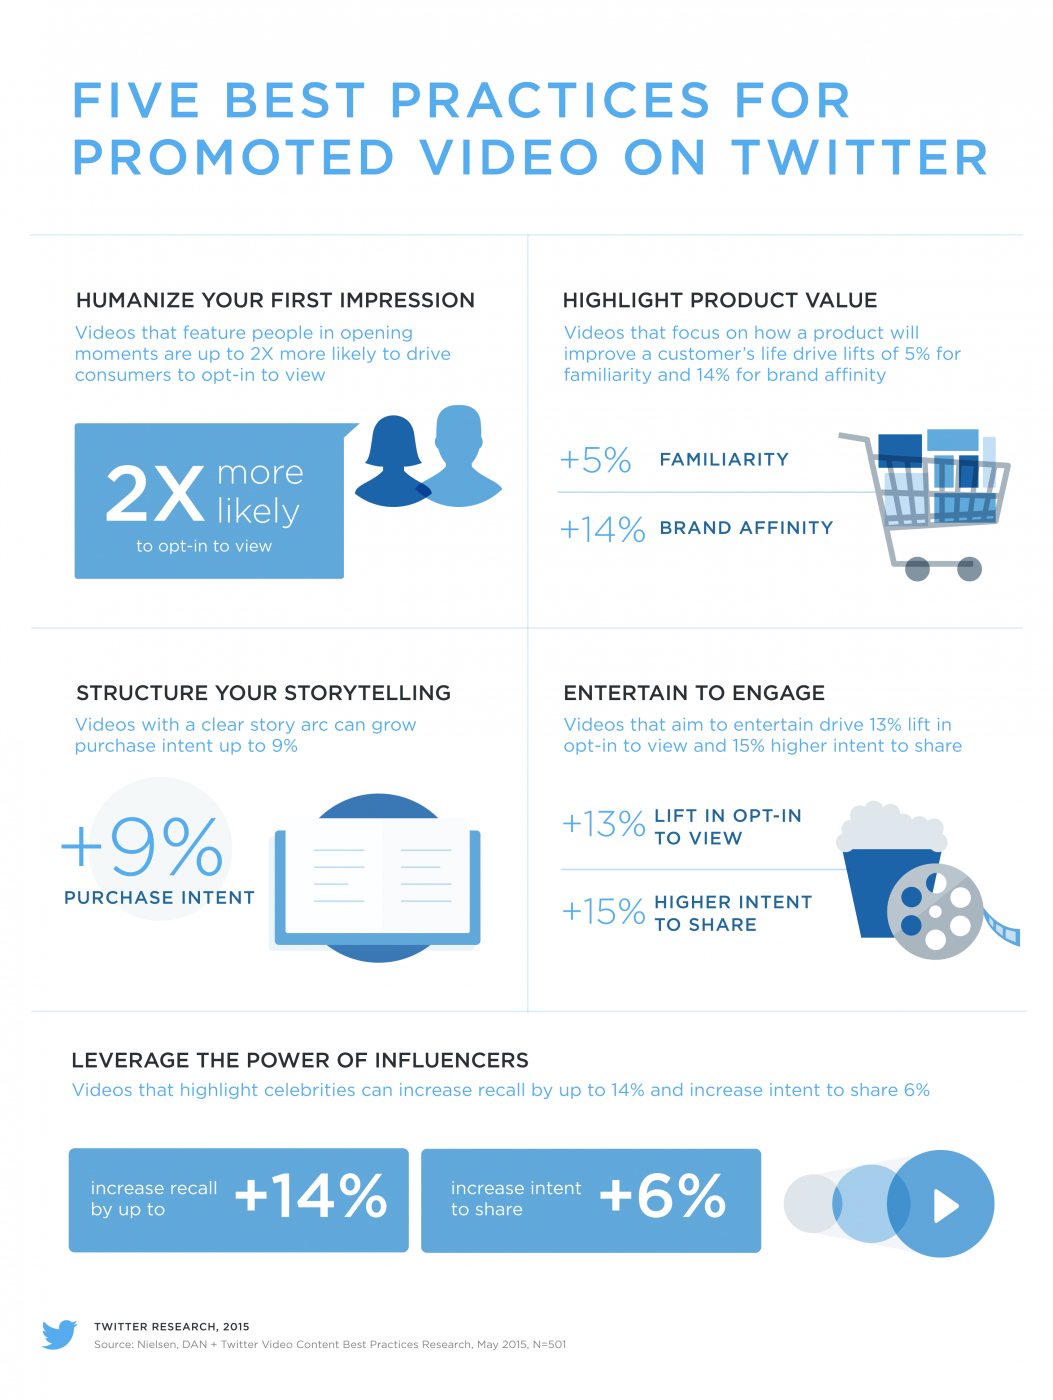 How to Maximize Video Content Performance on Twitter [Infographic] | Social Media Today